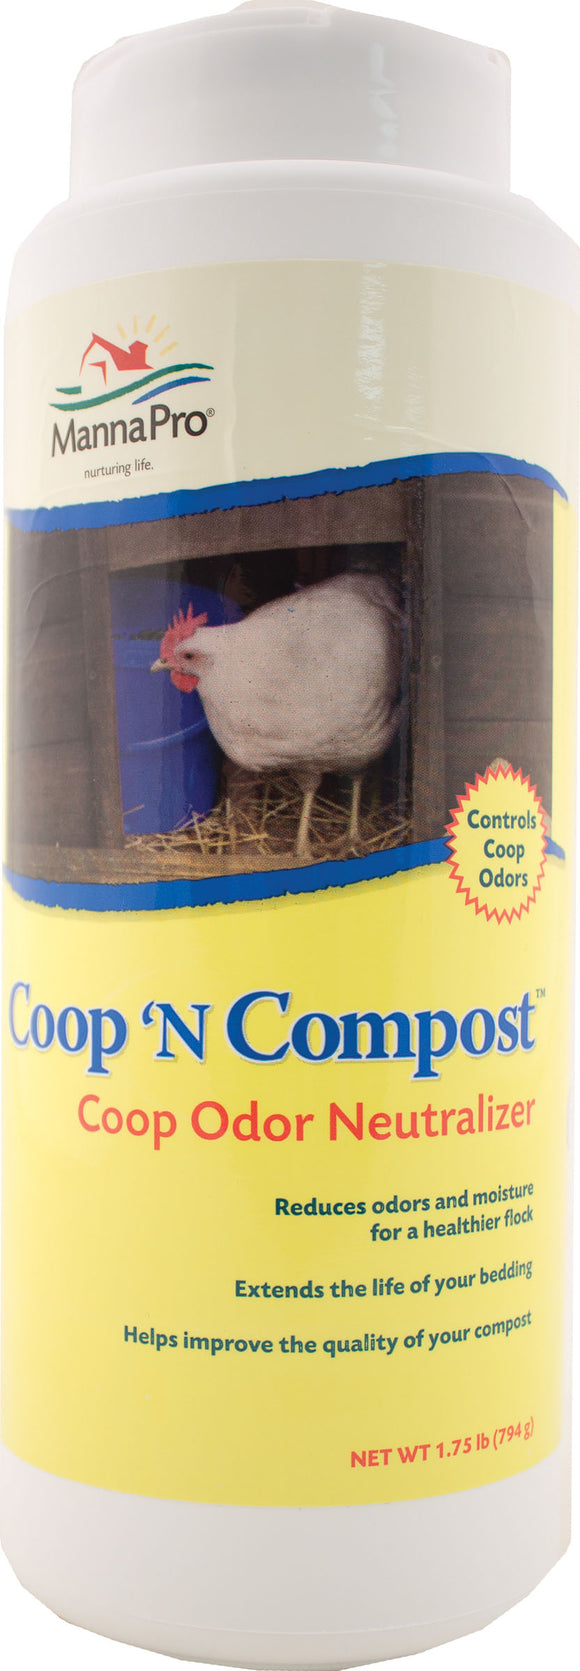 Manna Pro-farm - Coop N Compost Coop Odor Neutralizer